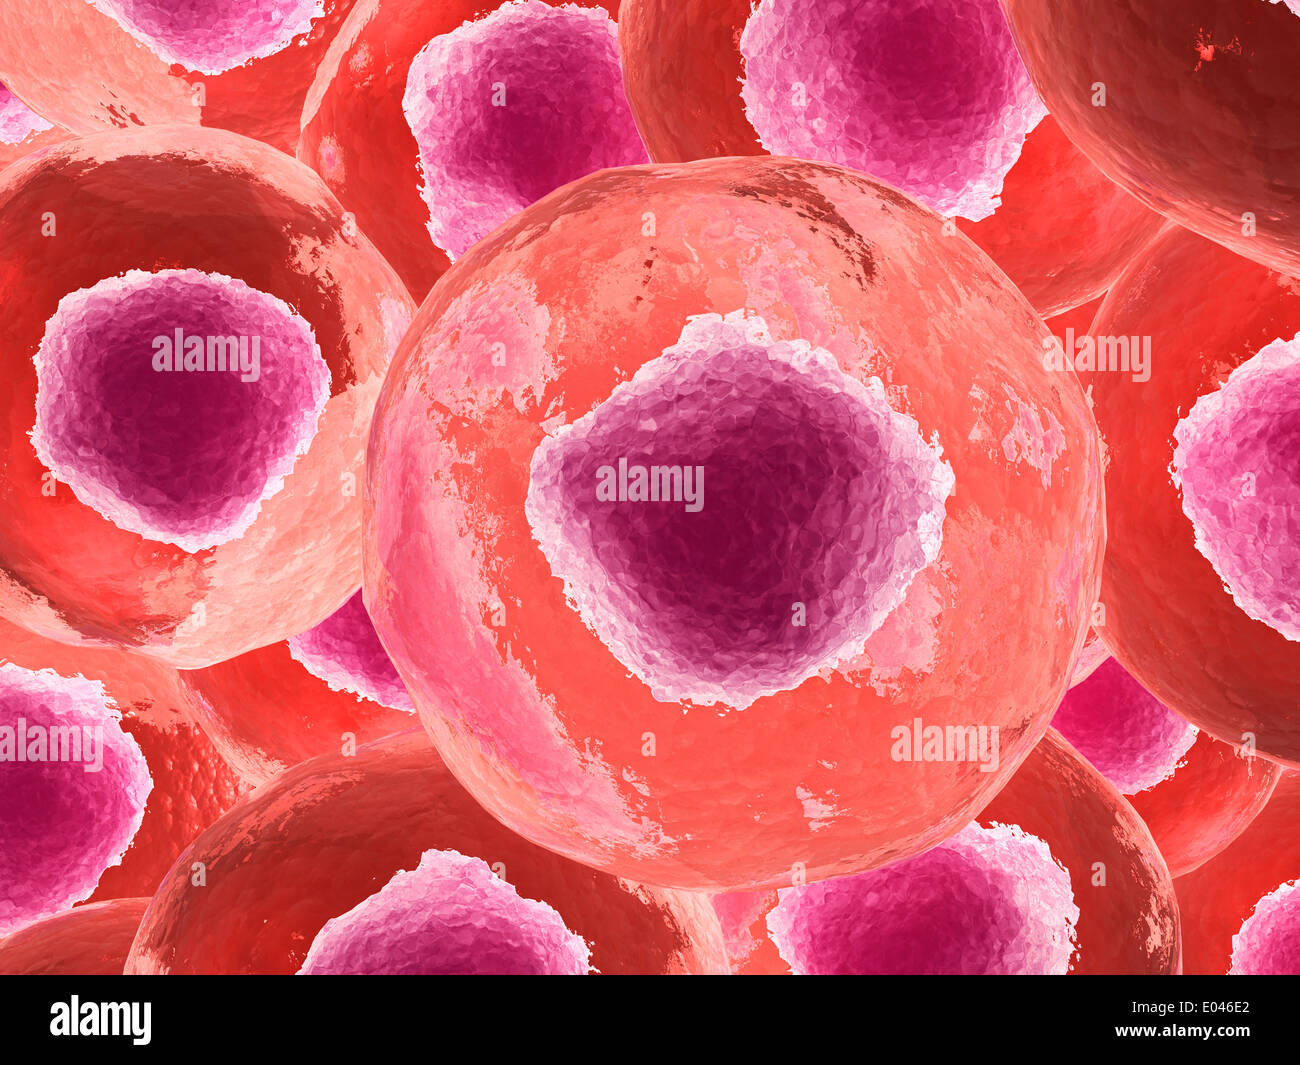 Microscopic view of animal cell. - Stock Image